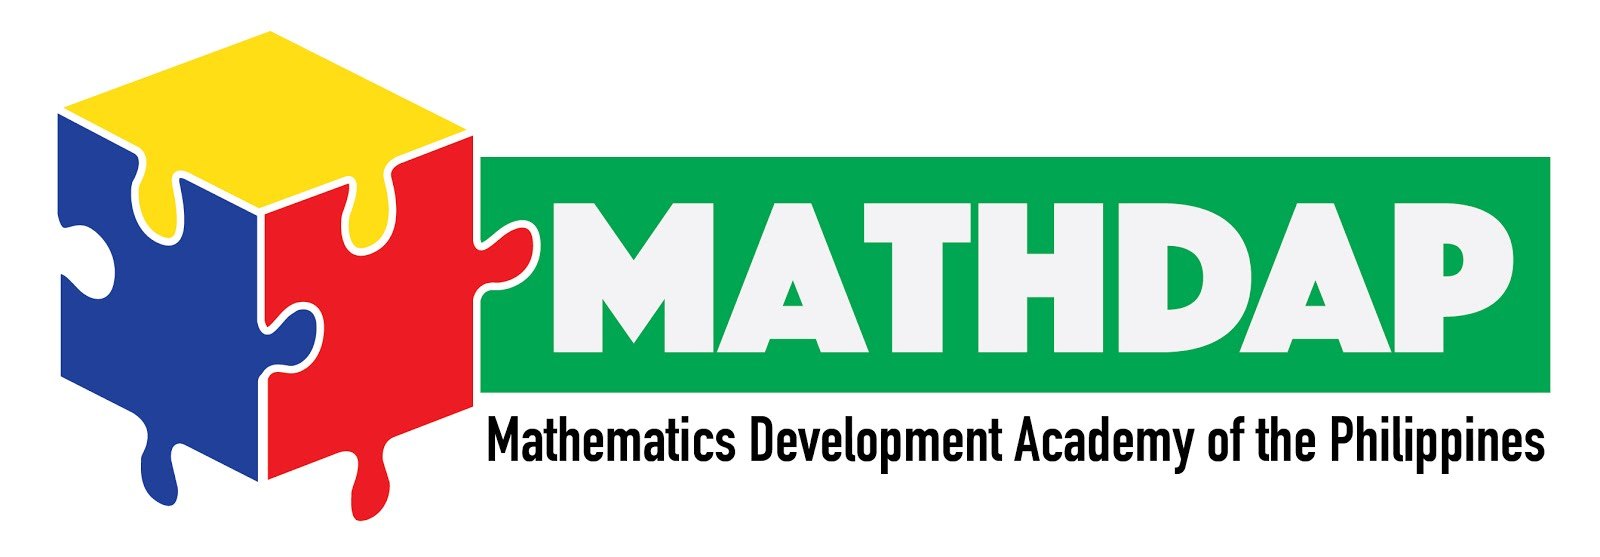 Mathematics Development Academy of the Philippines